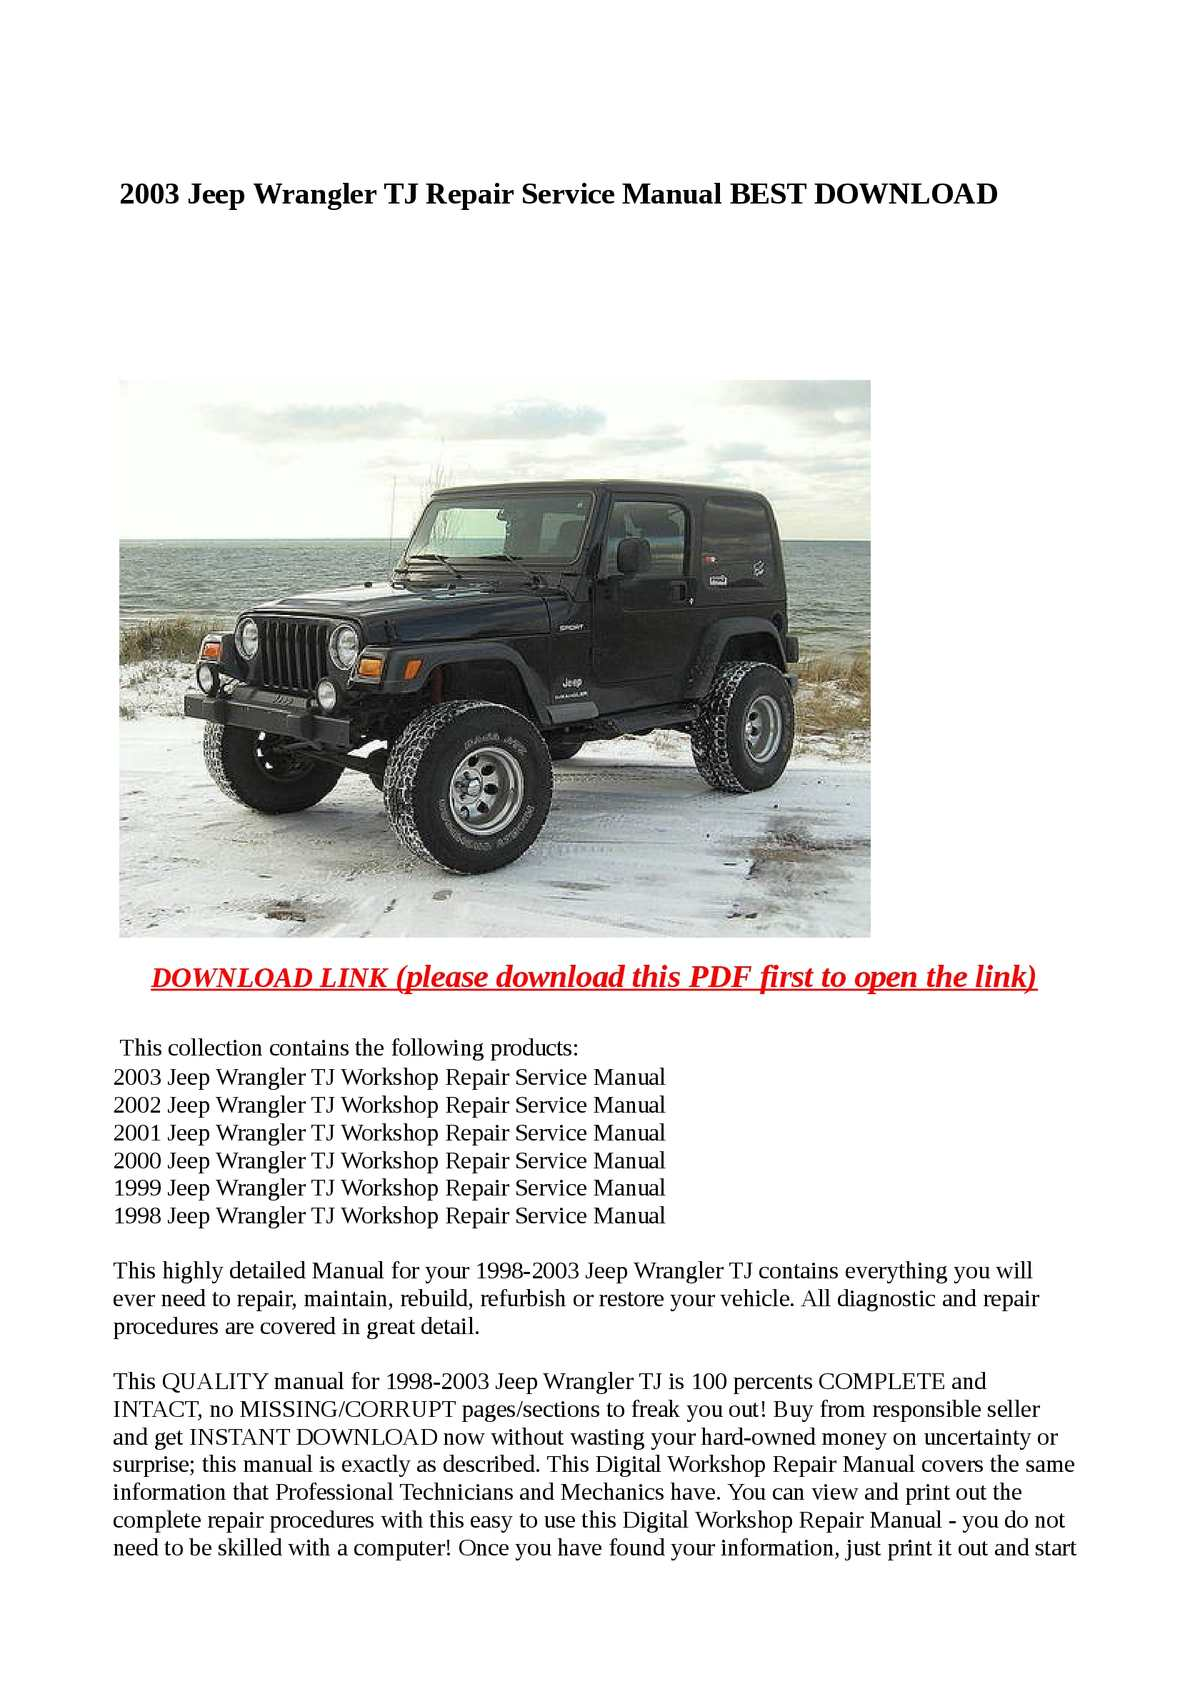 calam o 2003 jeep wrangler tj repair service manual best download rh calameo com 2002 jeep wrangler parts manual 2002 Jeep Wrangler Sport